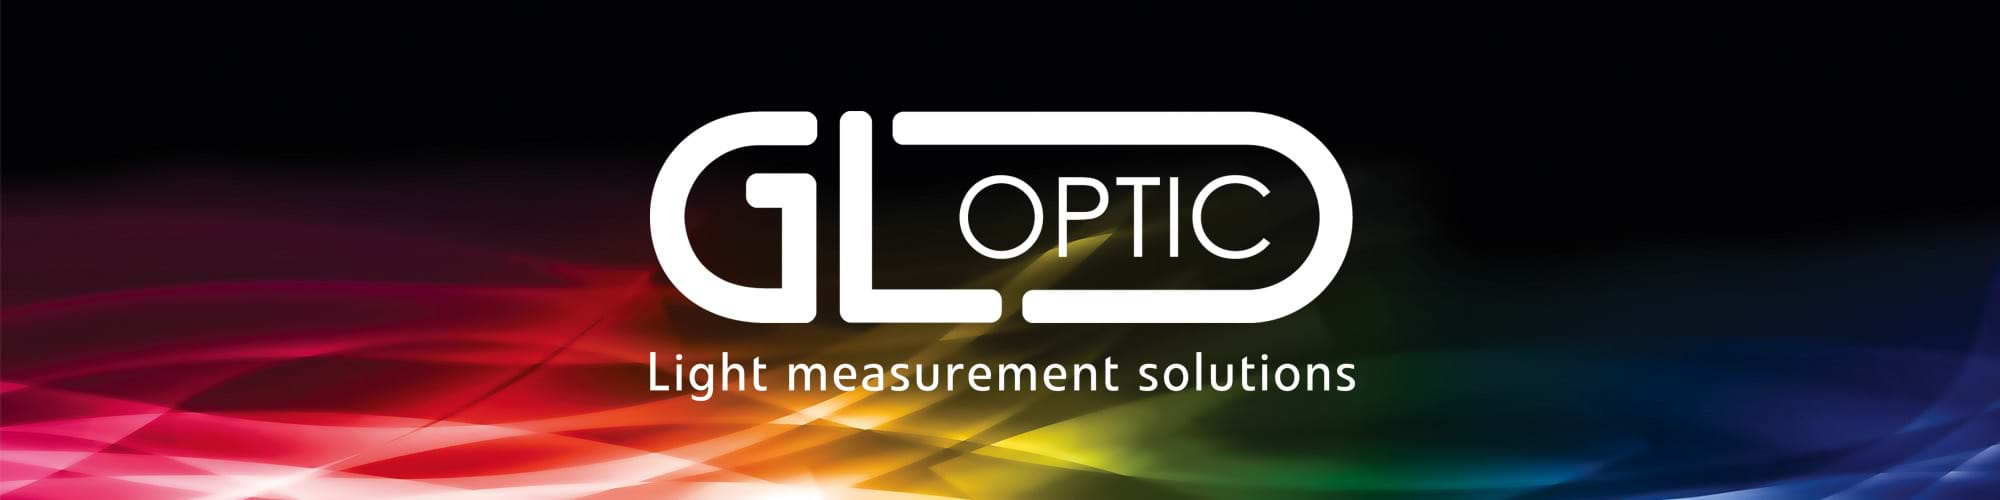 company profile GL OPTIC light measurement